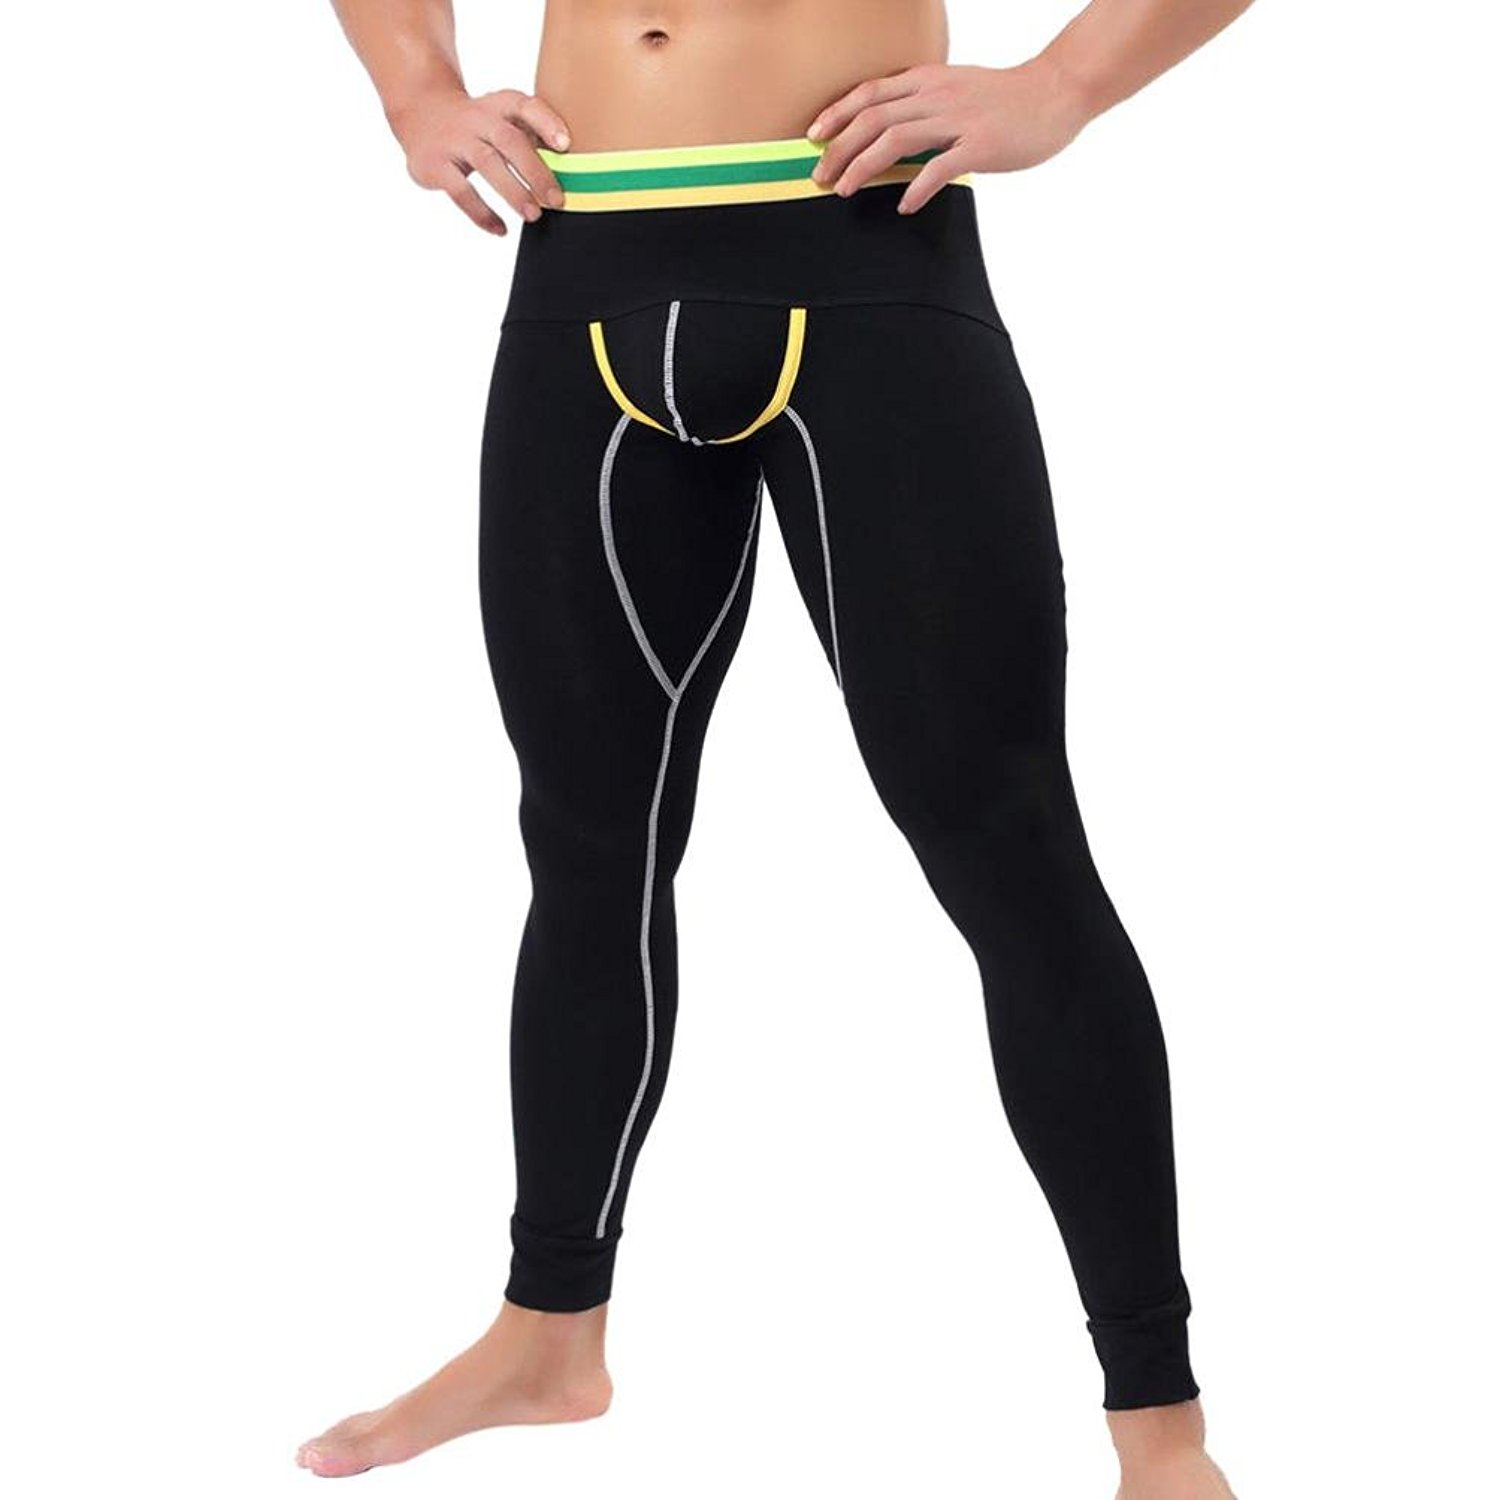 ef852b1c953e3 Get Quotations · OUBAO Winter Long Johns for Men, Mens Thermal Tight  Compression Warm Base Layer Underwear Pants